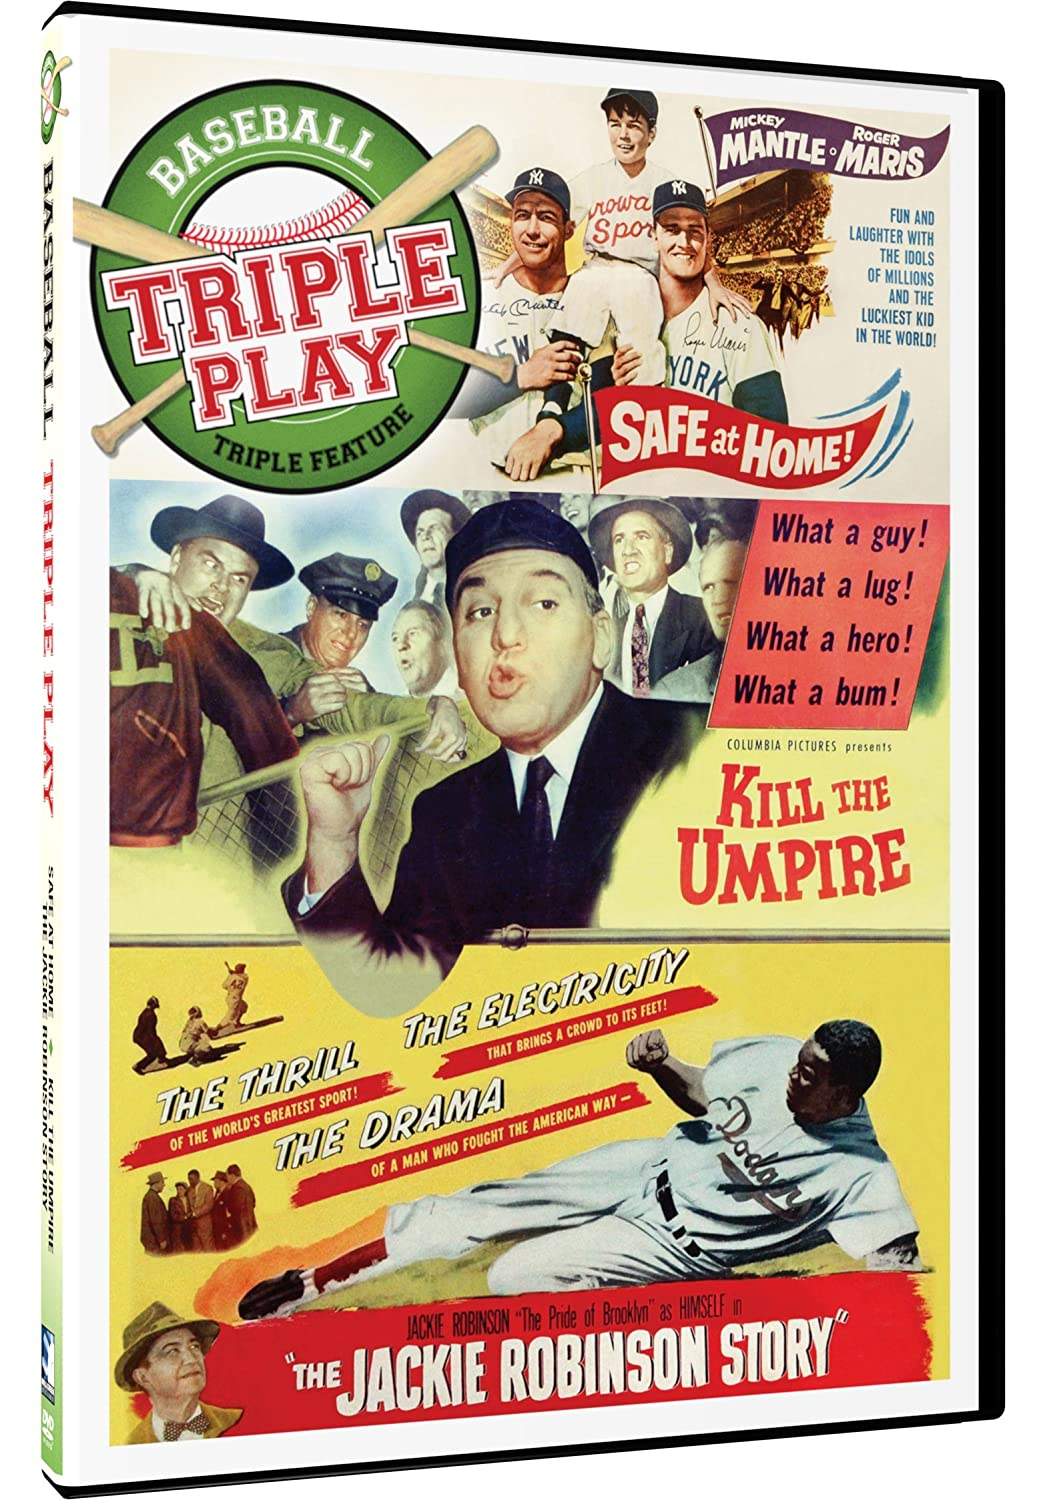 Triple Play - Baseball Triple Feature: Safe at Home, Kill the Umpire, The Jackie Robinson Story